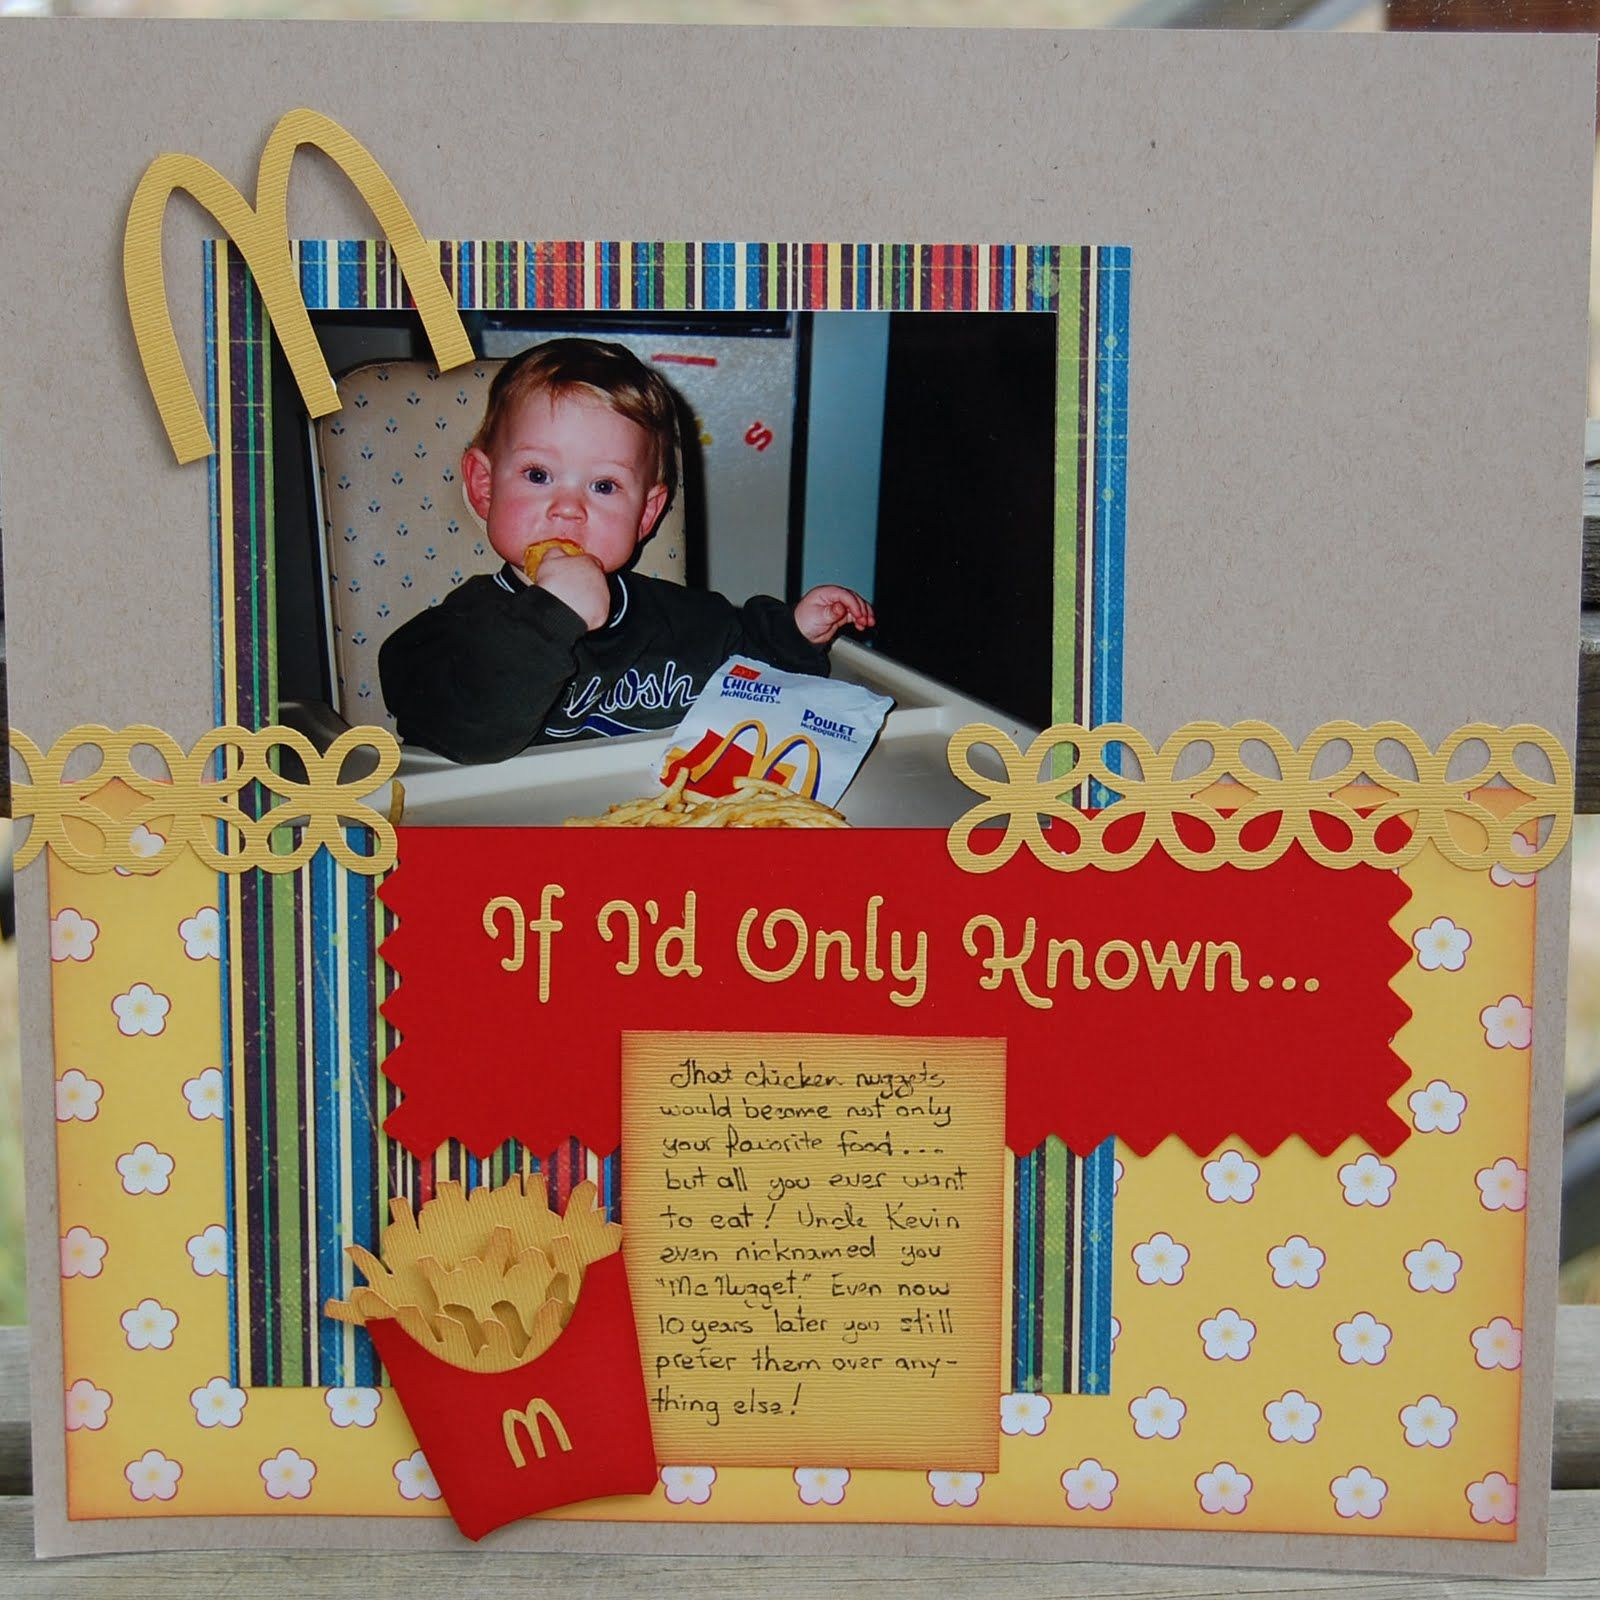 How to scrapbook yahoo - Mcdonald S Scrapbook Layout Yahoo Search Results Yahoo Image Search Results